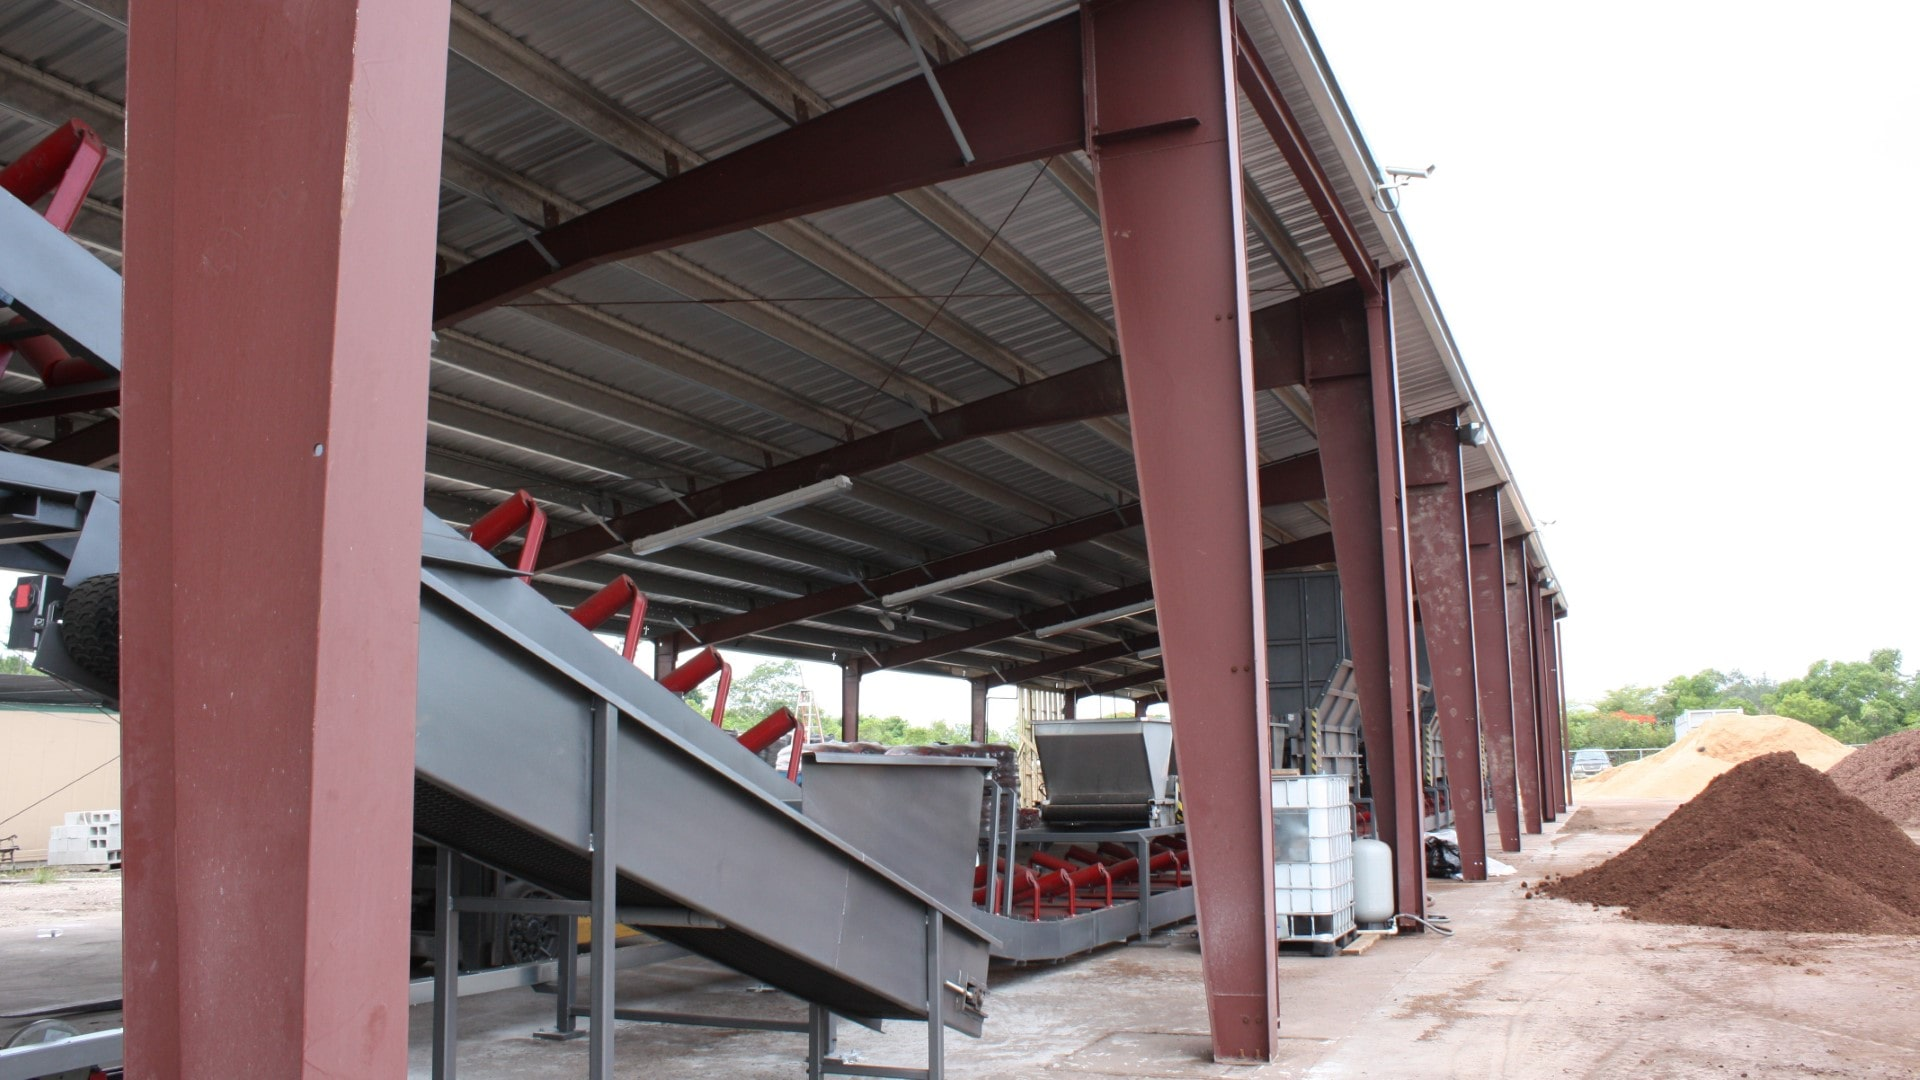 Single slope open roof only metal building view of columns and protected composting equipment.